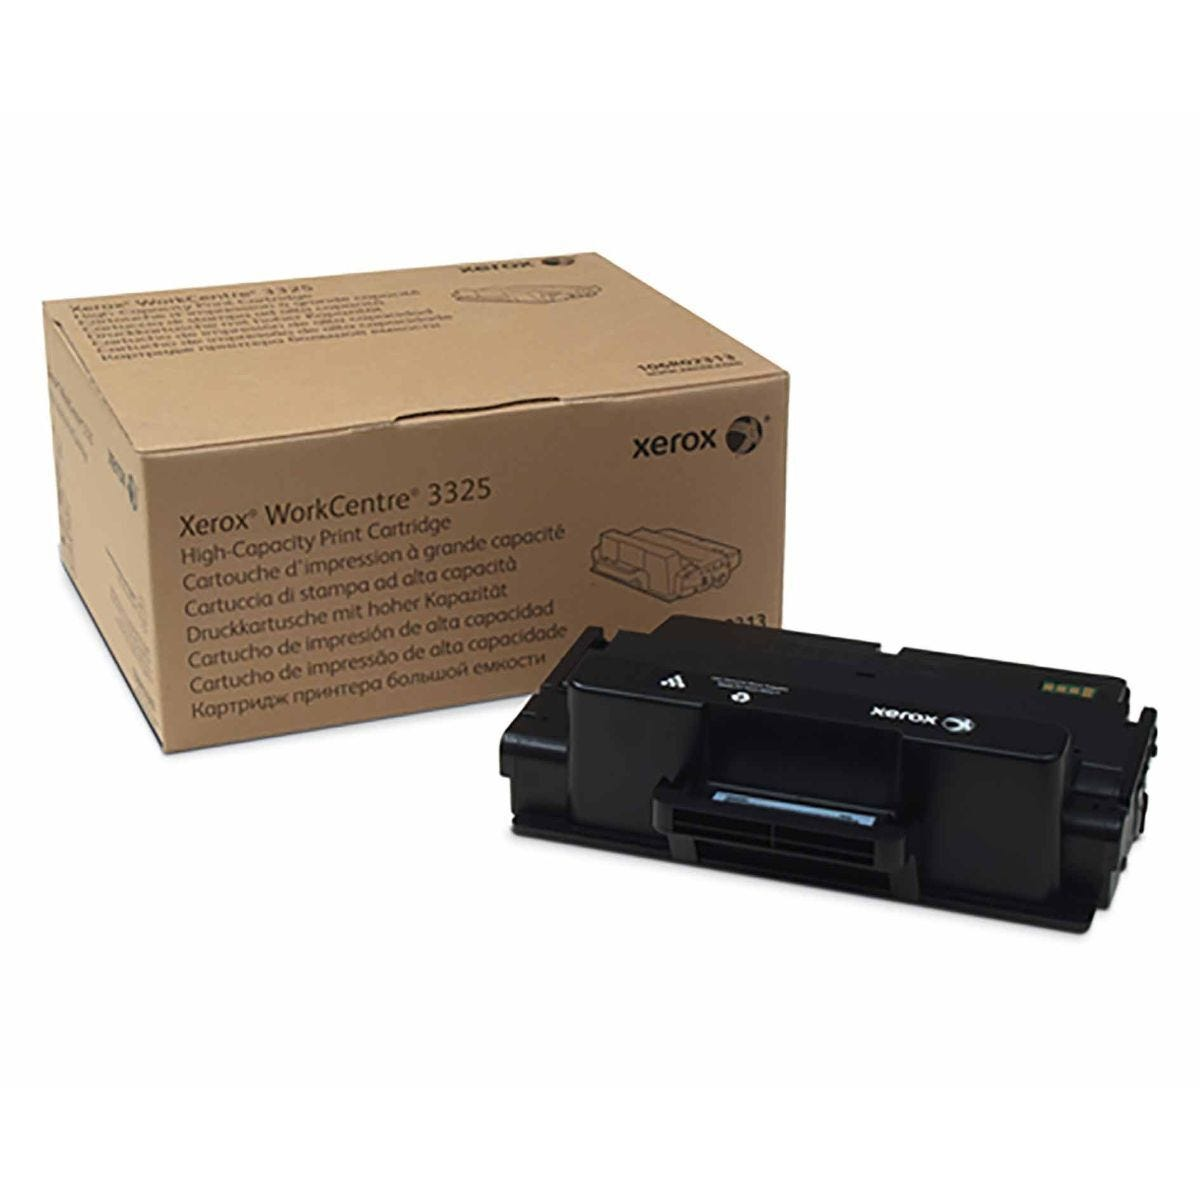 Xerox Workcentre 3325 High Yield Black Original Toner Cartridge